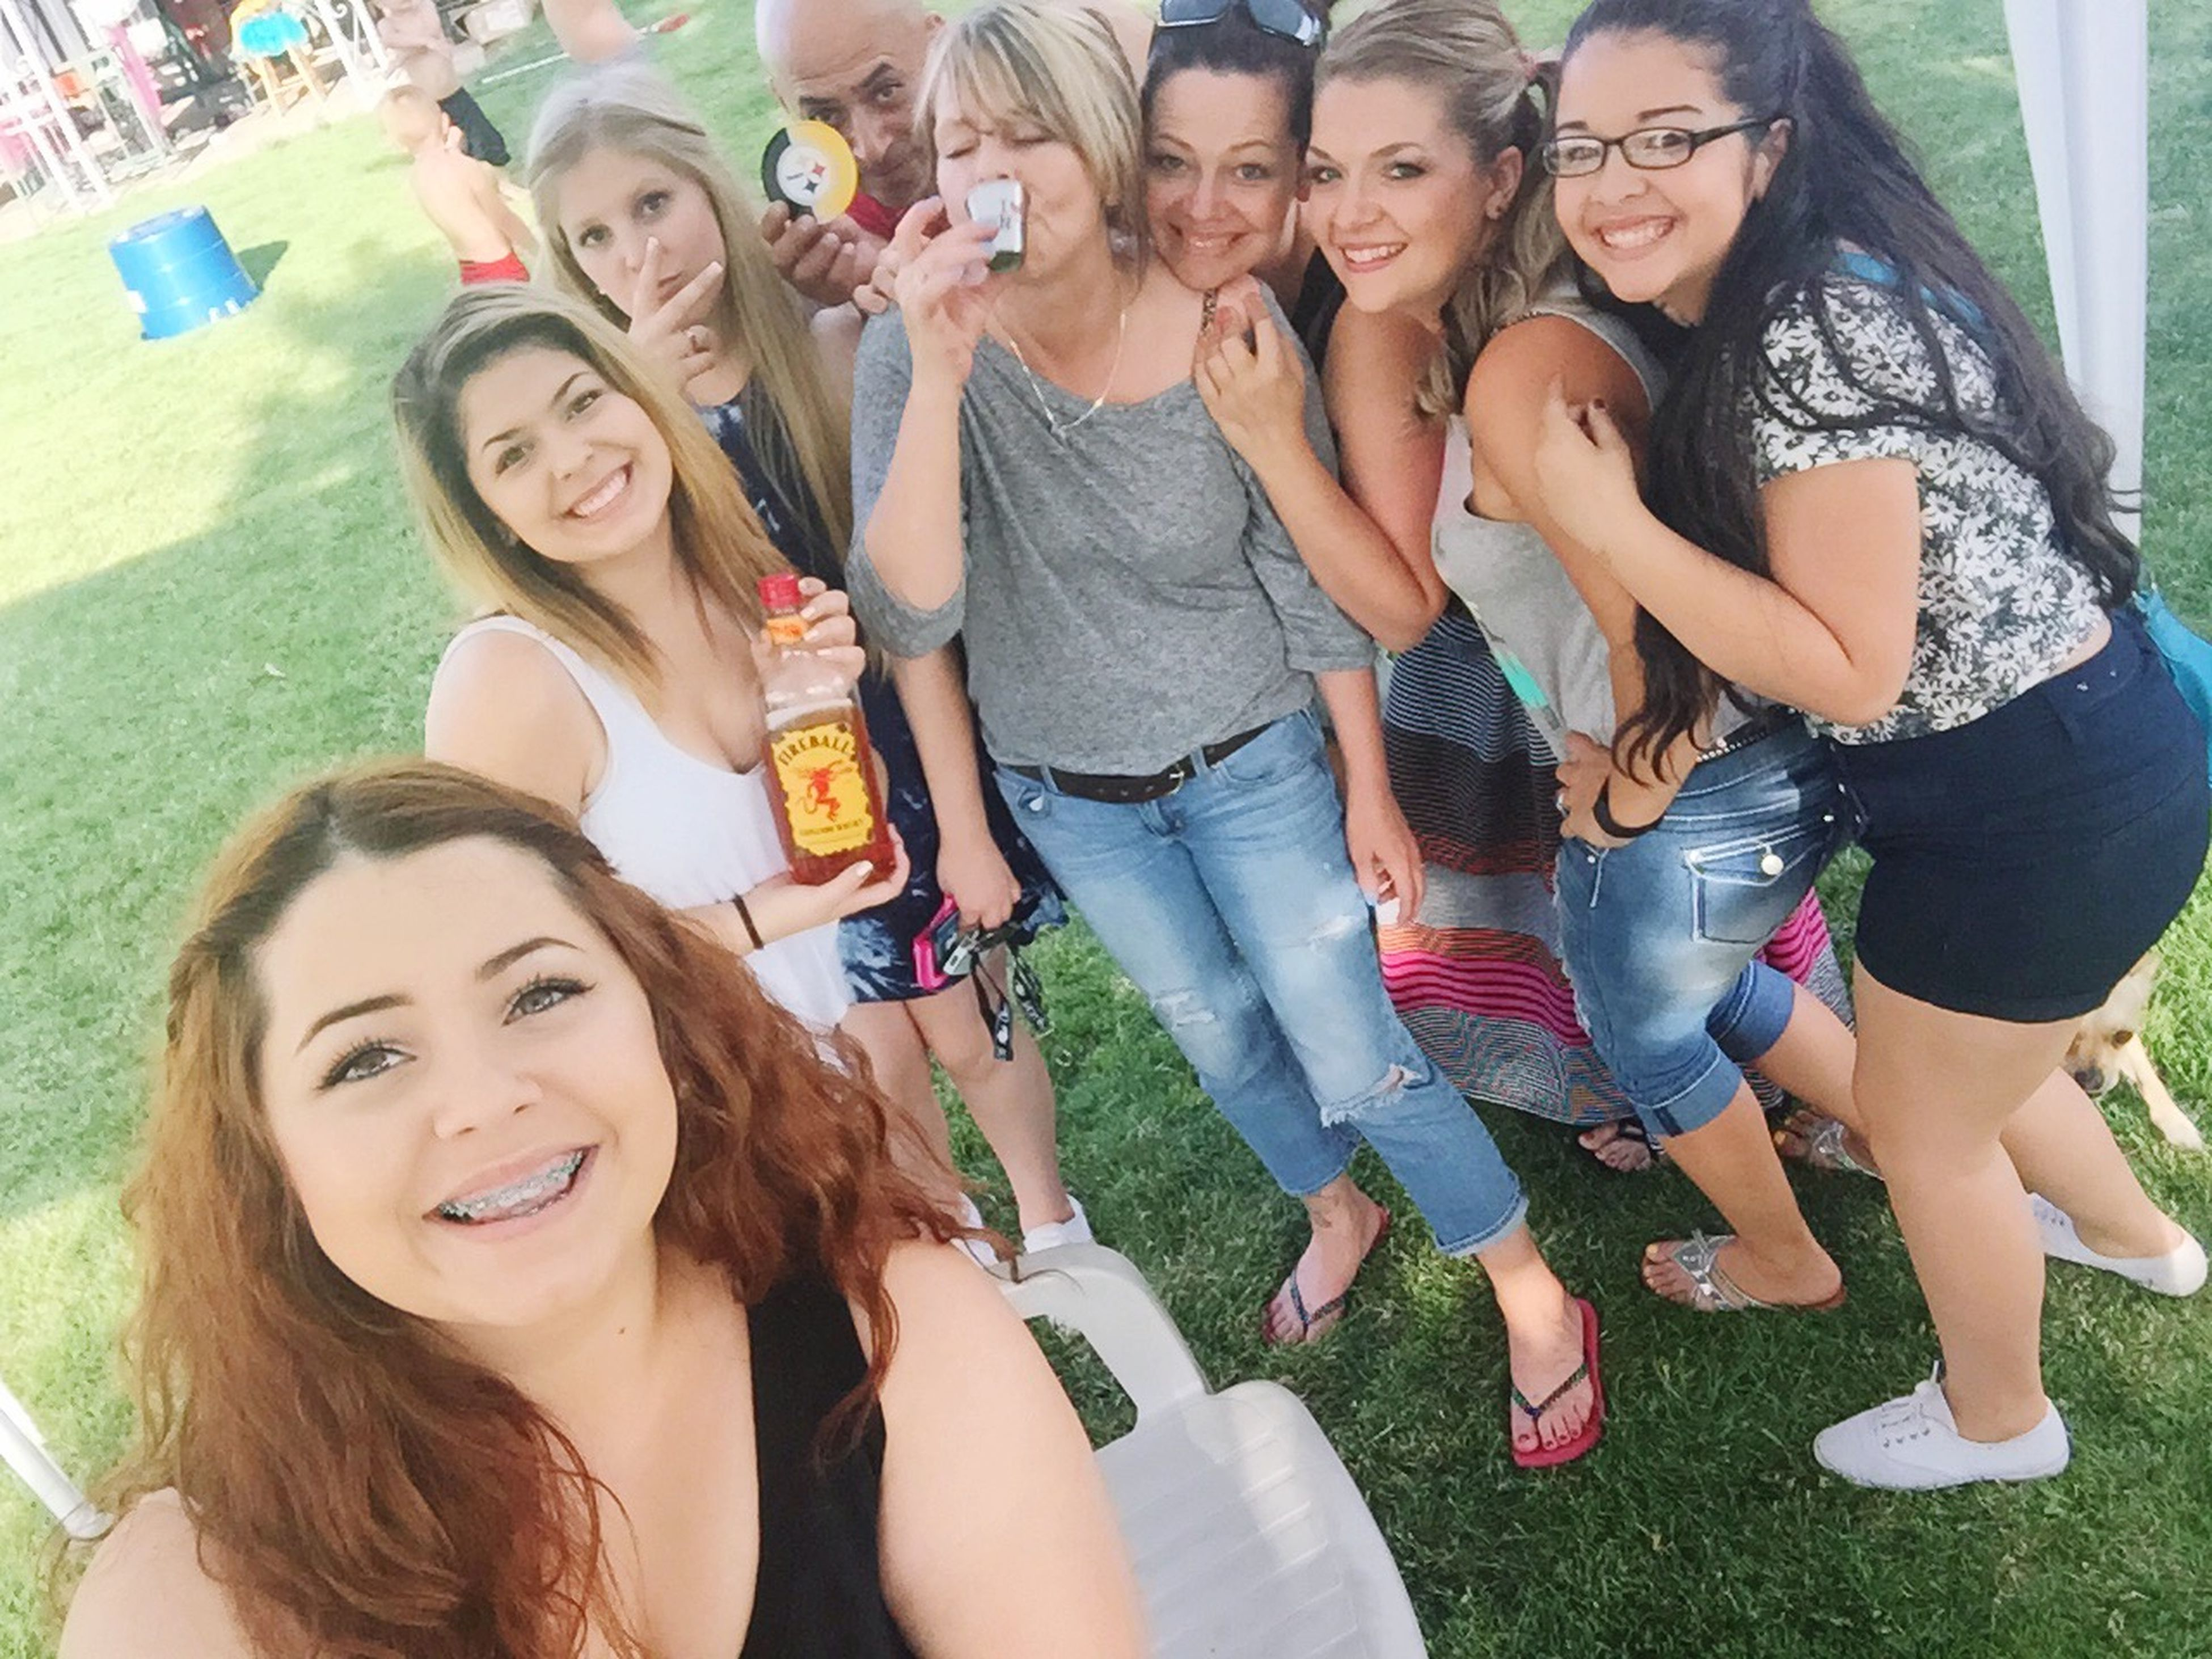 lifestyles, young adult, leisure activity, togetherness, young women, person, looking at camera, happiness, smiling, portrait, bonding, front view, casual clothing, friendship, love, standing, fun, toothy smile